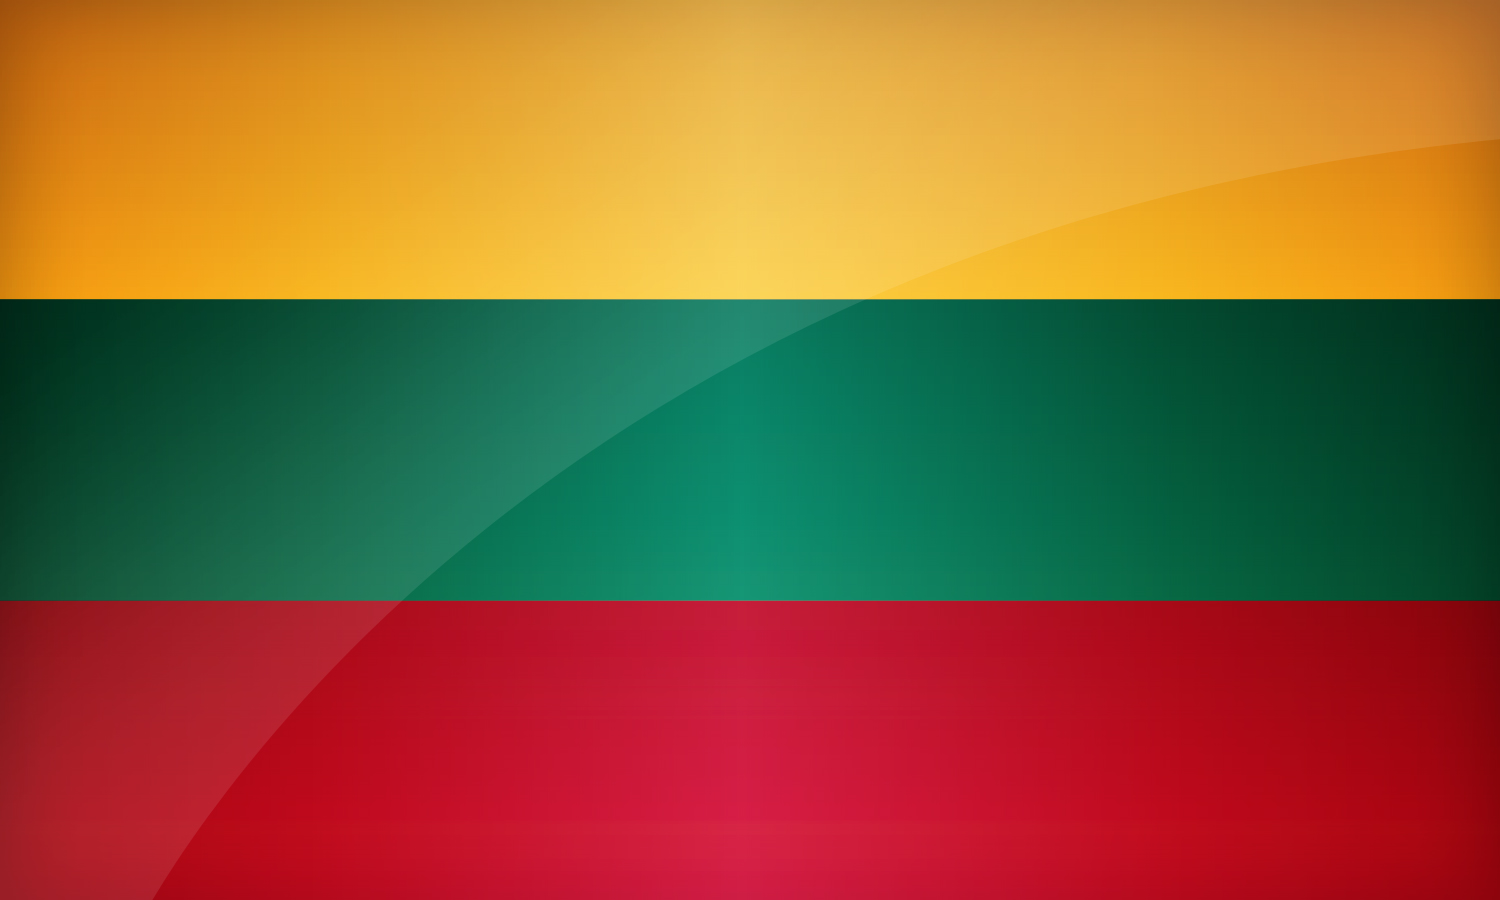 Flag Of Lithuania Backgrounds on Wallpapers Vista